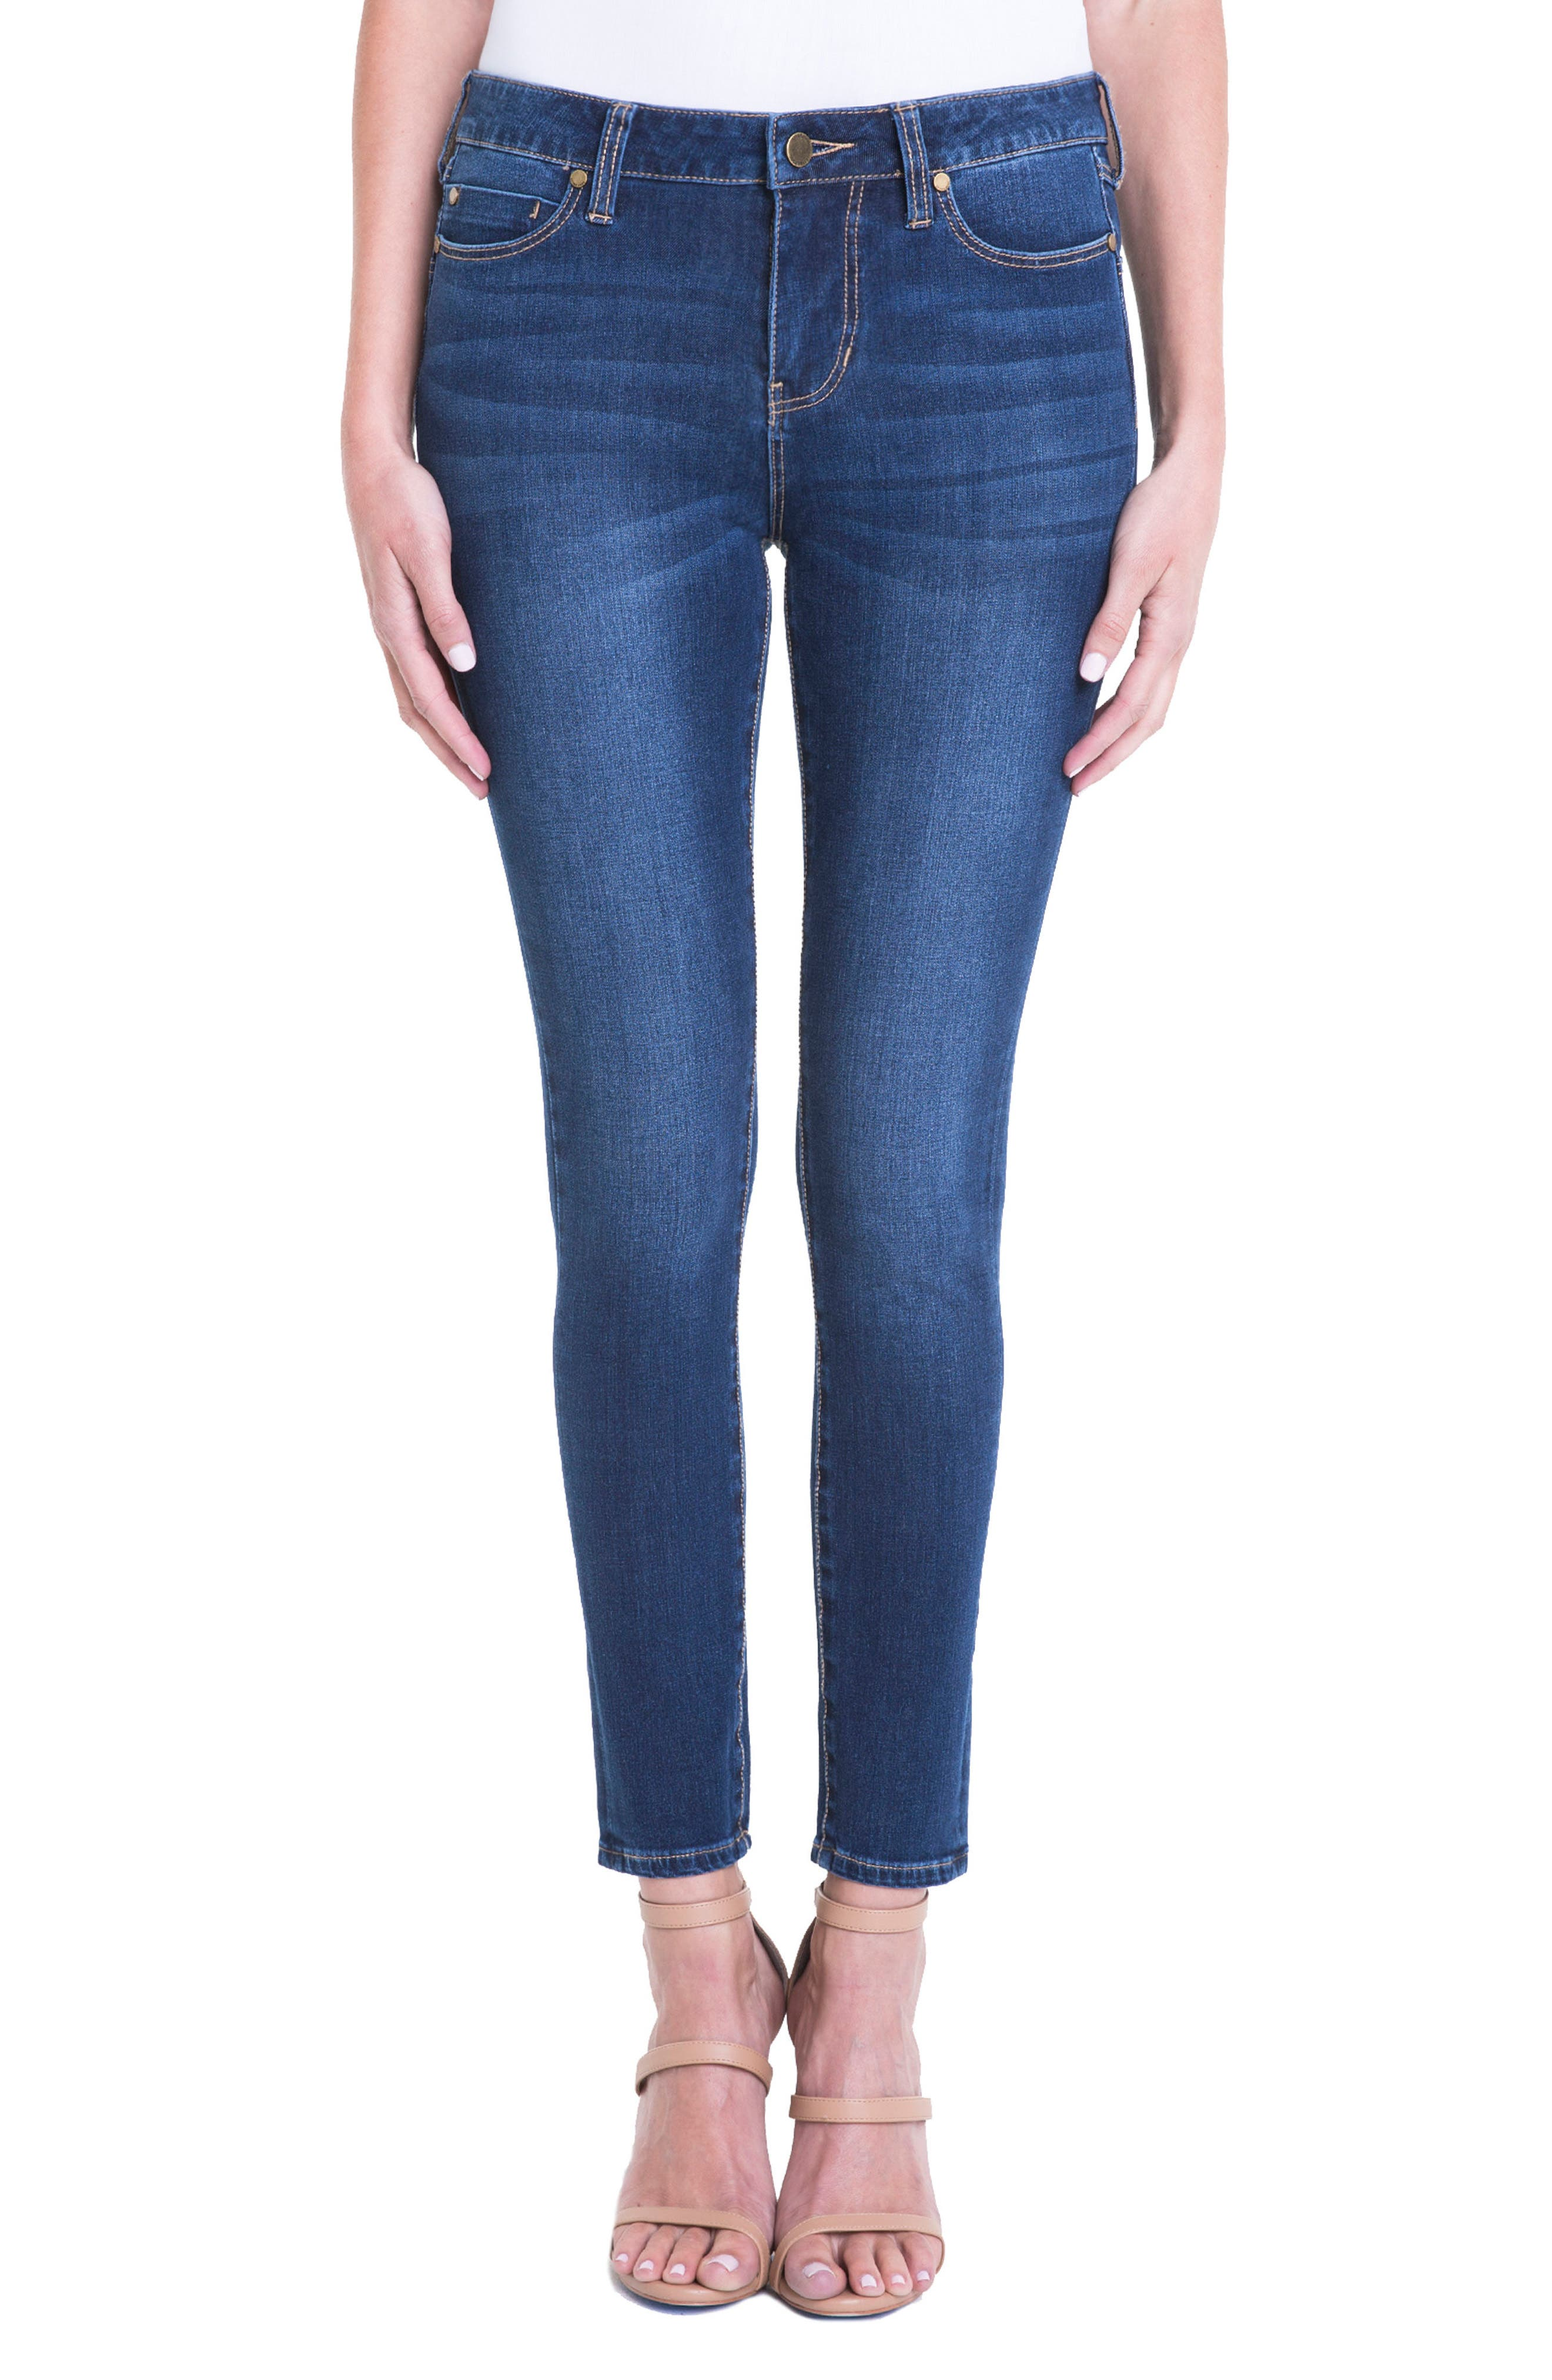 Piper Hugger Lift Sculpt Ankle Skinny Jeans,                         Main,                         color, 407